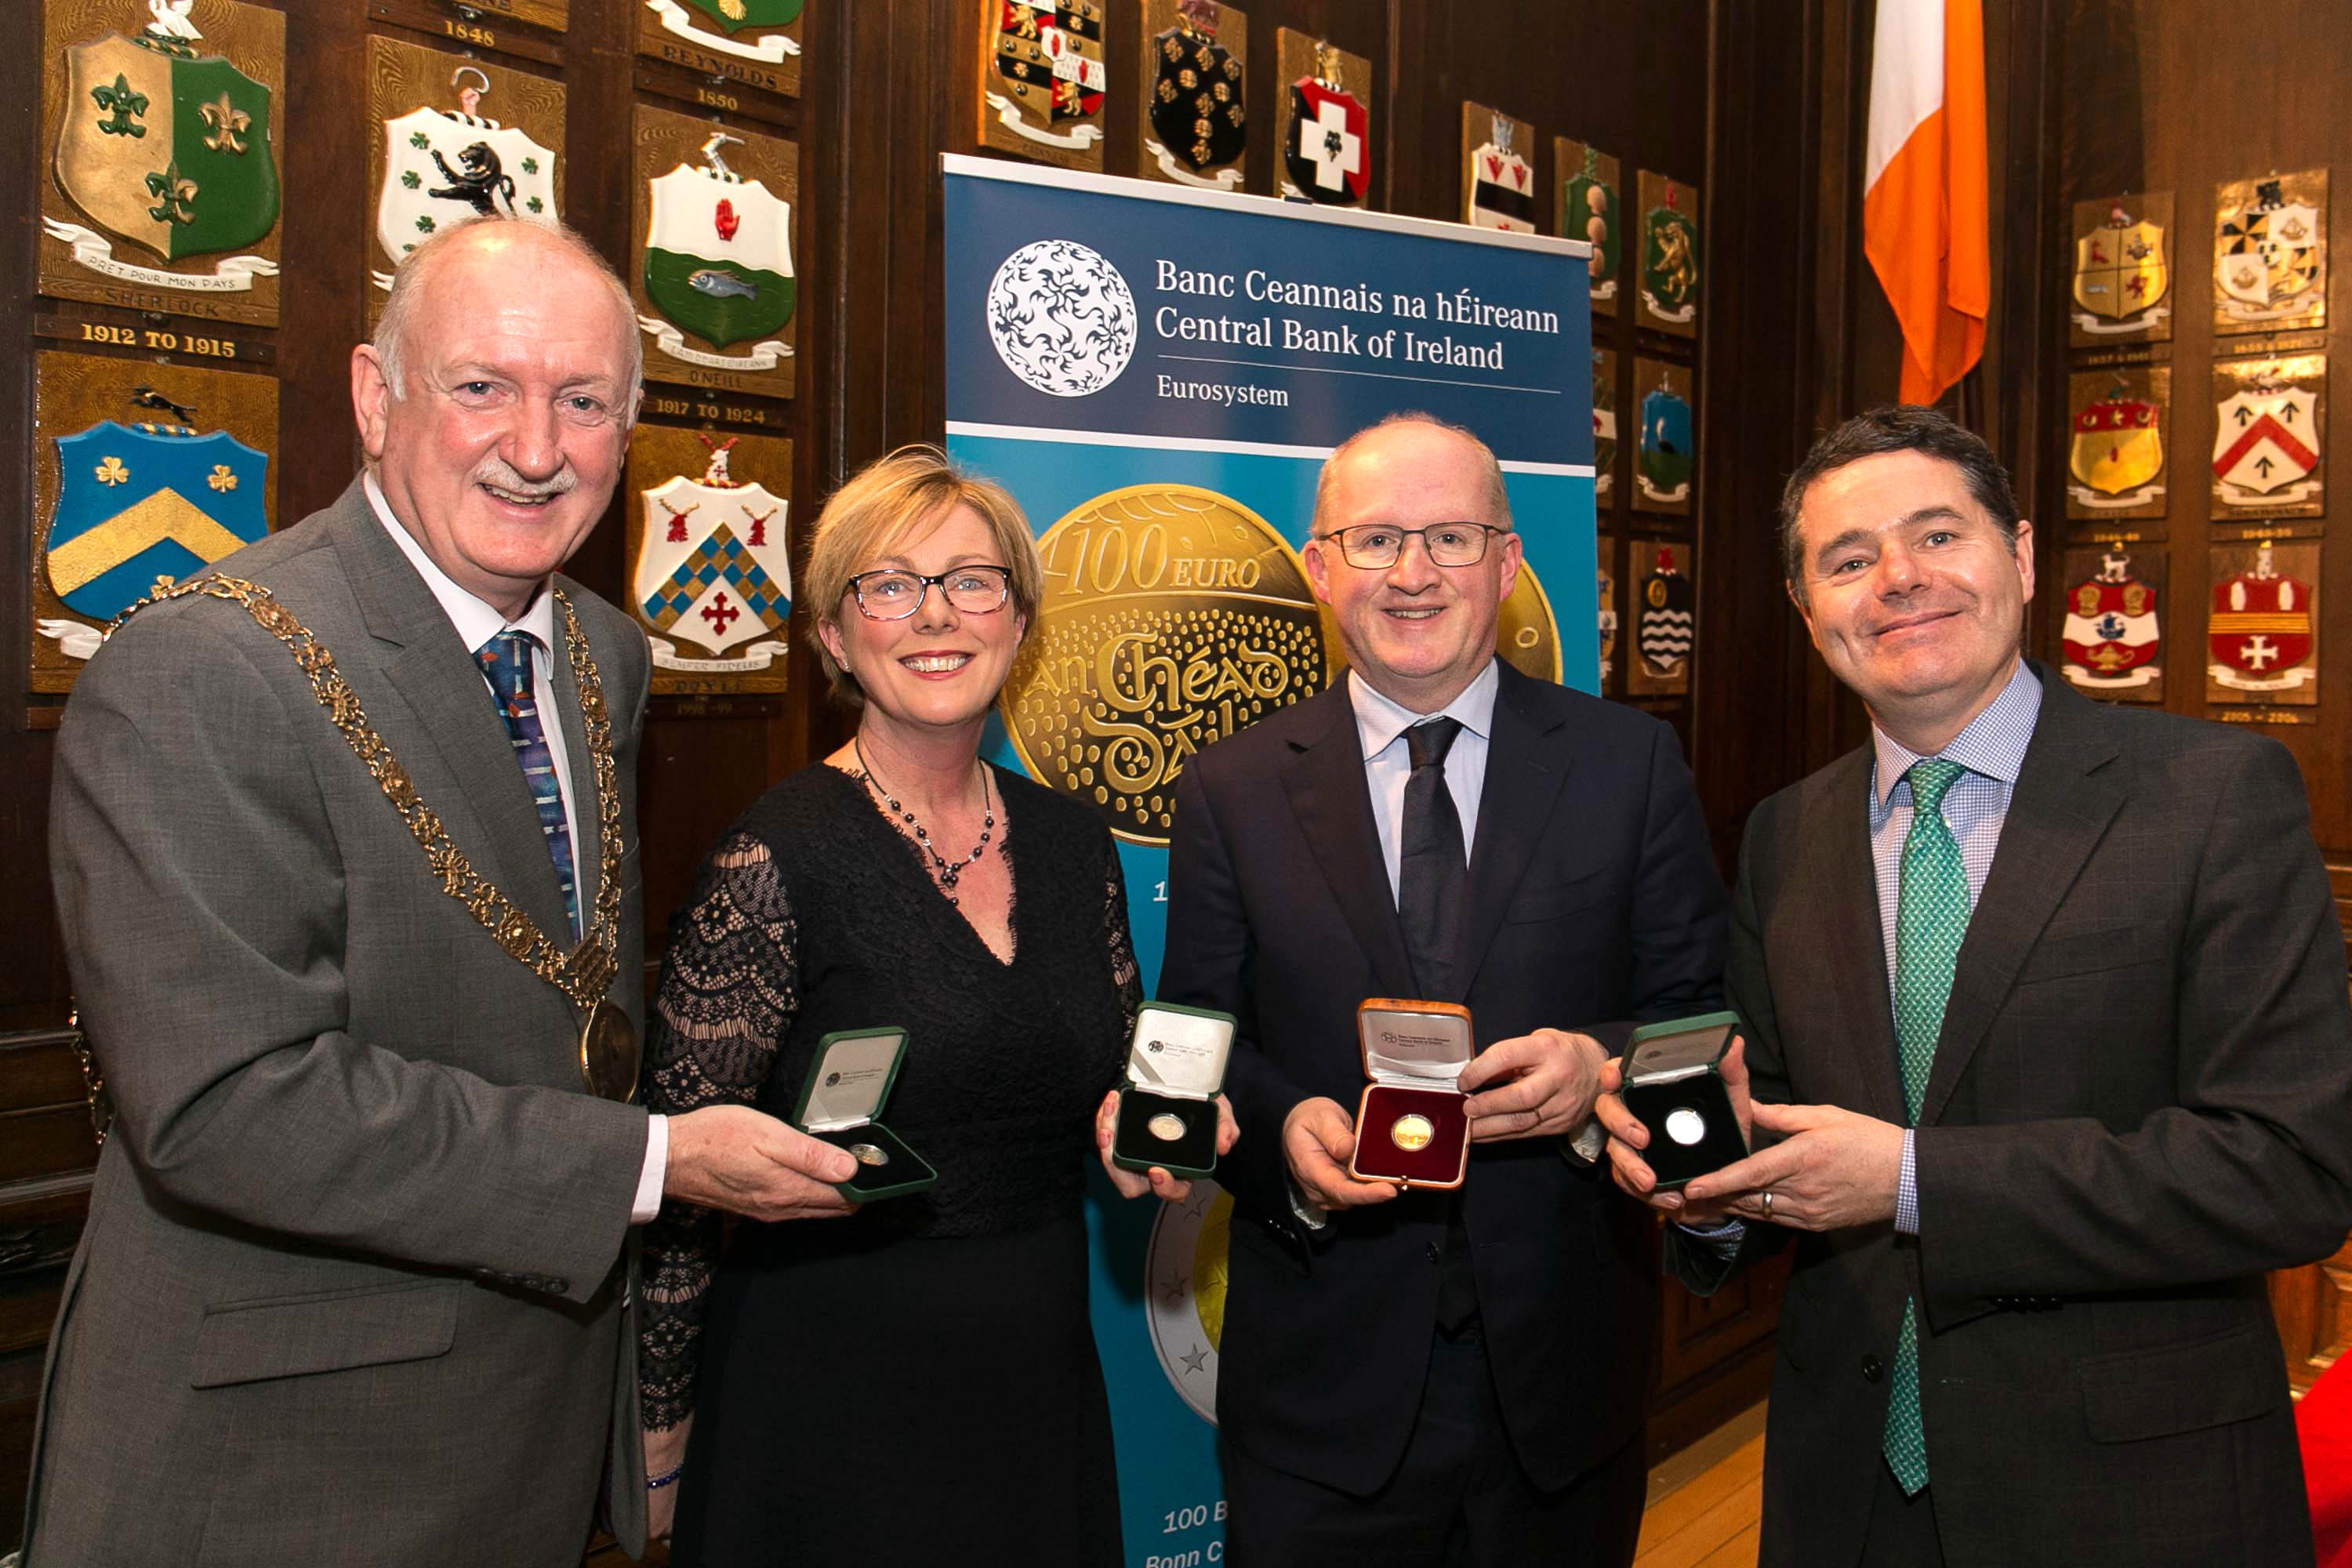 €2 coin commemorating the centenary of the meeting of the First Dáil launched at Mansion House